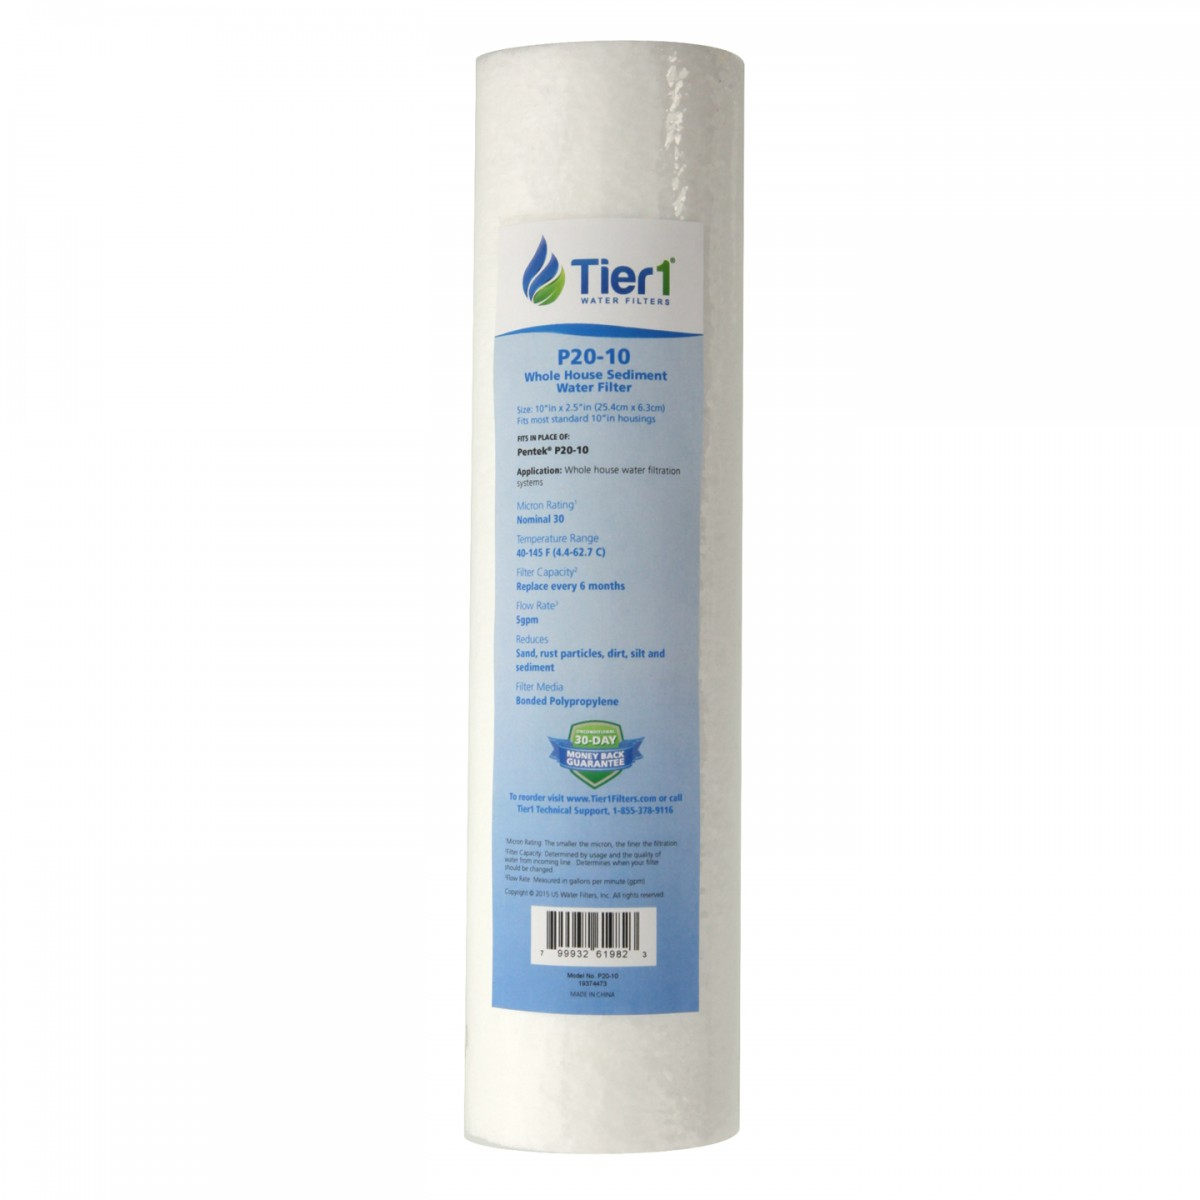 Pentek P20 Comparable Whole House Sediment Water Filter by Tier1